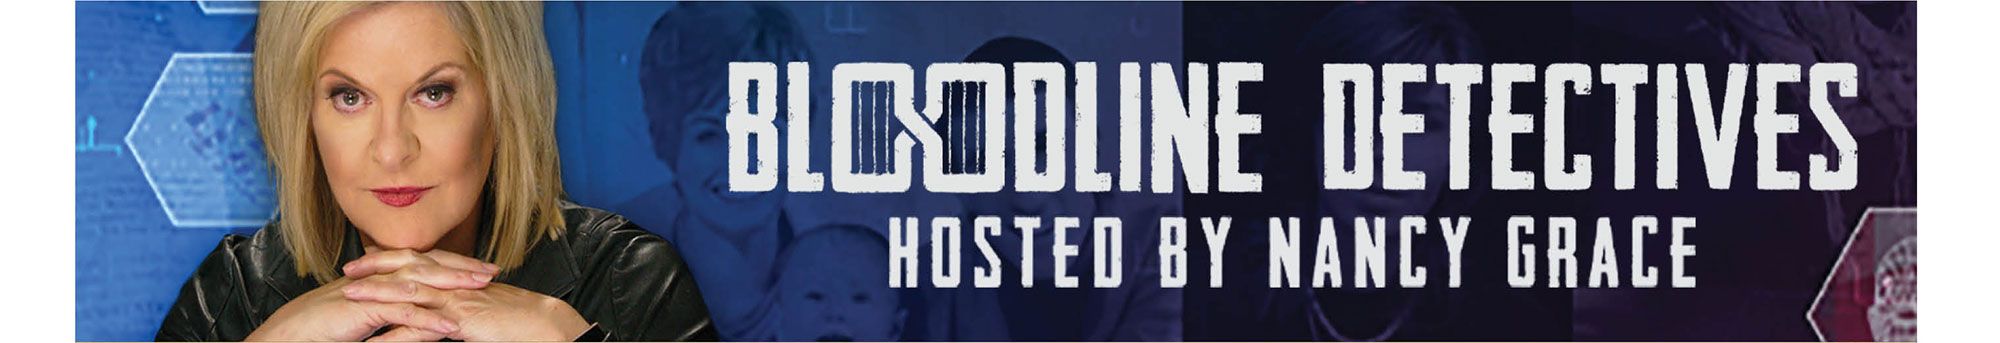 Bloodline Detectives hosted by Nancy Grace